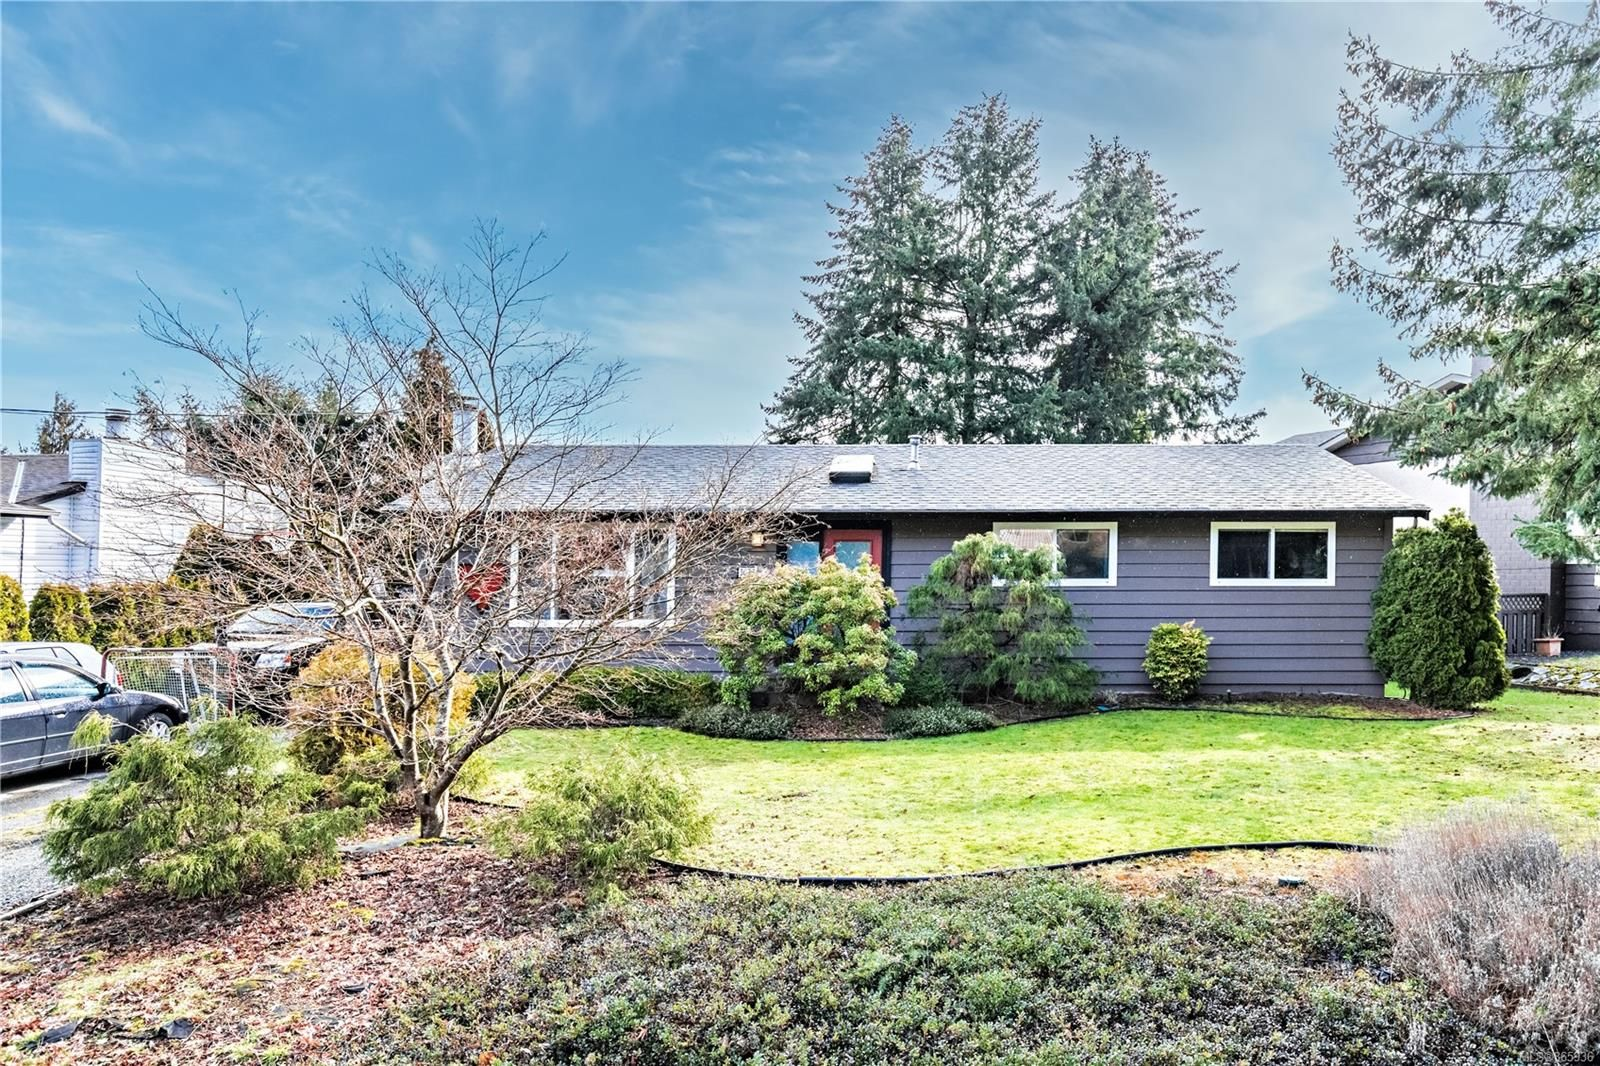 Main Photo: 3073 McCauley Dr in : Na Departure Bay House for sale (Nanaimo)  : MLS®# 865936